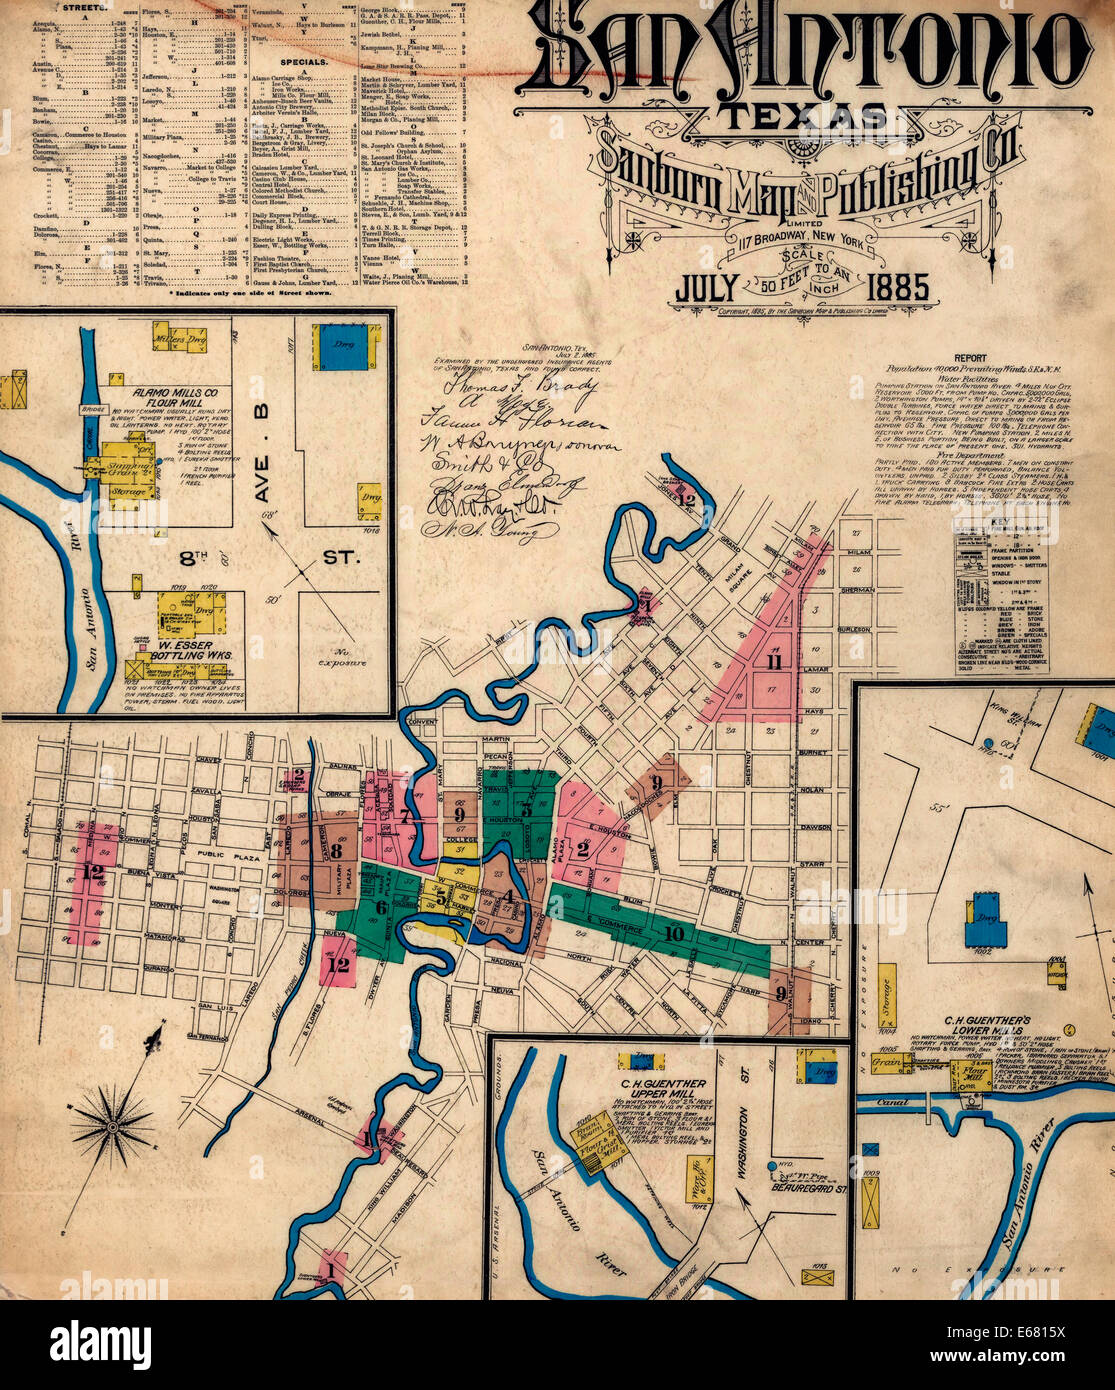 Sanborn Fire Insurance Map from San Antonio, Bexar County ... on alamo blueprints, brooke army medical center map, san francisco de asis mission map, alamo on us map, alamo area map, alamo colleges map, alamo mission layout, battle of alamo location map, alamo battle 1836 map, alamo city tx, alamo hawaii map, storming of bexar map, city of austin etj map, alamo battlefield map, alamo nevada map, san jacinto goliad texas map, the alamo map, alamo location on map, alamo original map, fort alamo map,